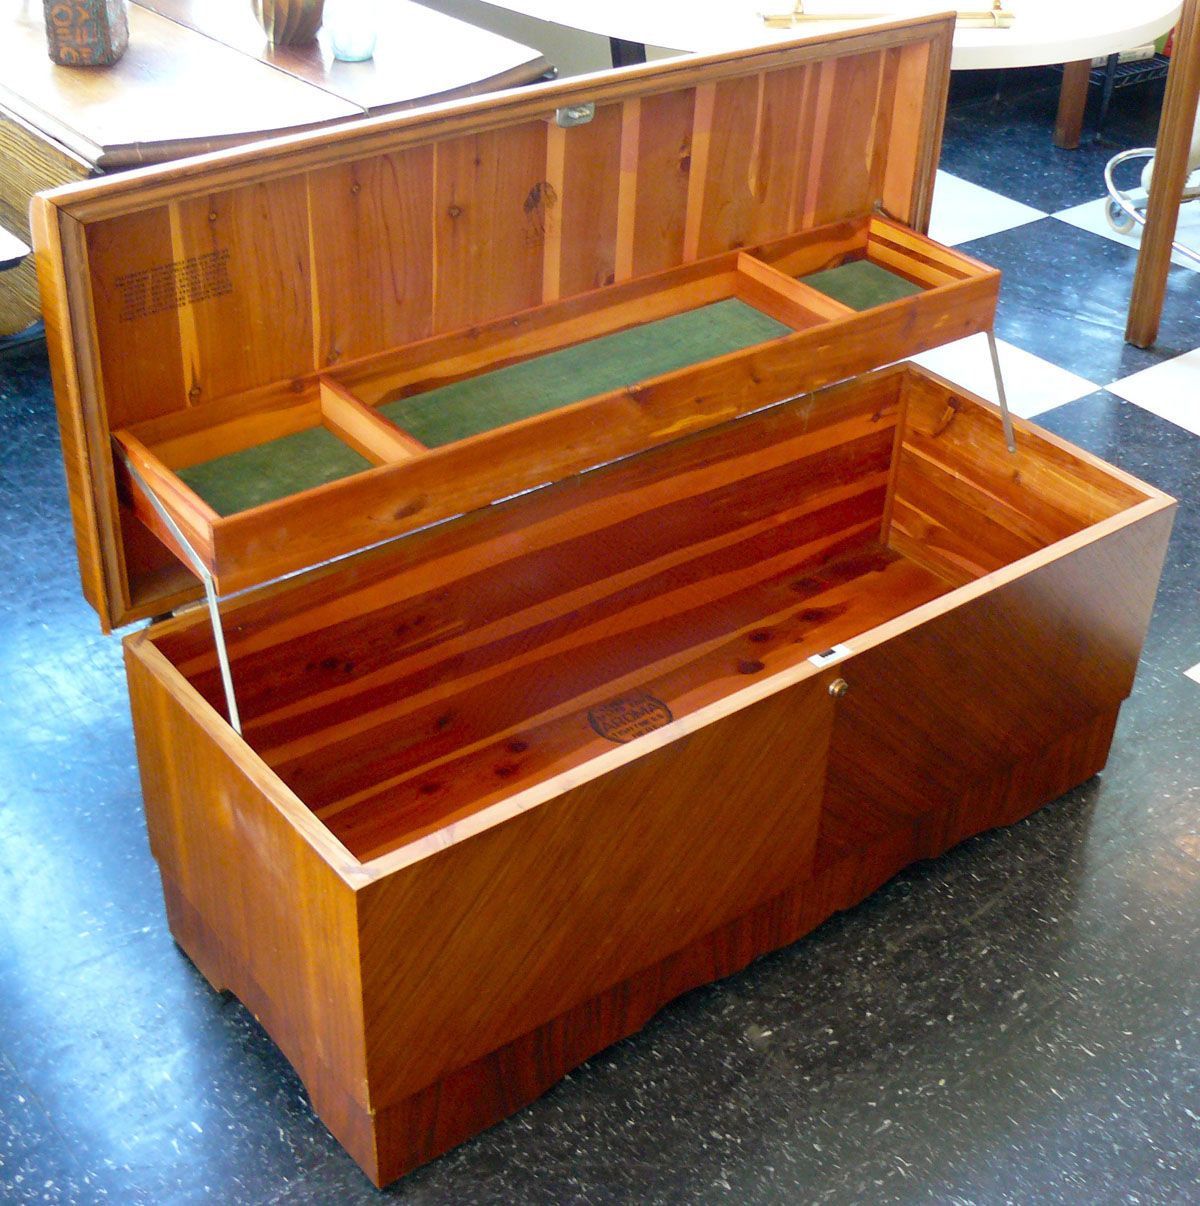 Good Lane Cedar Hope Chest. Mine Was Full To Overflowing. When I Married In 1971